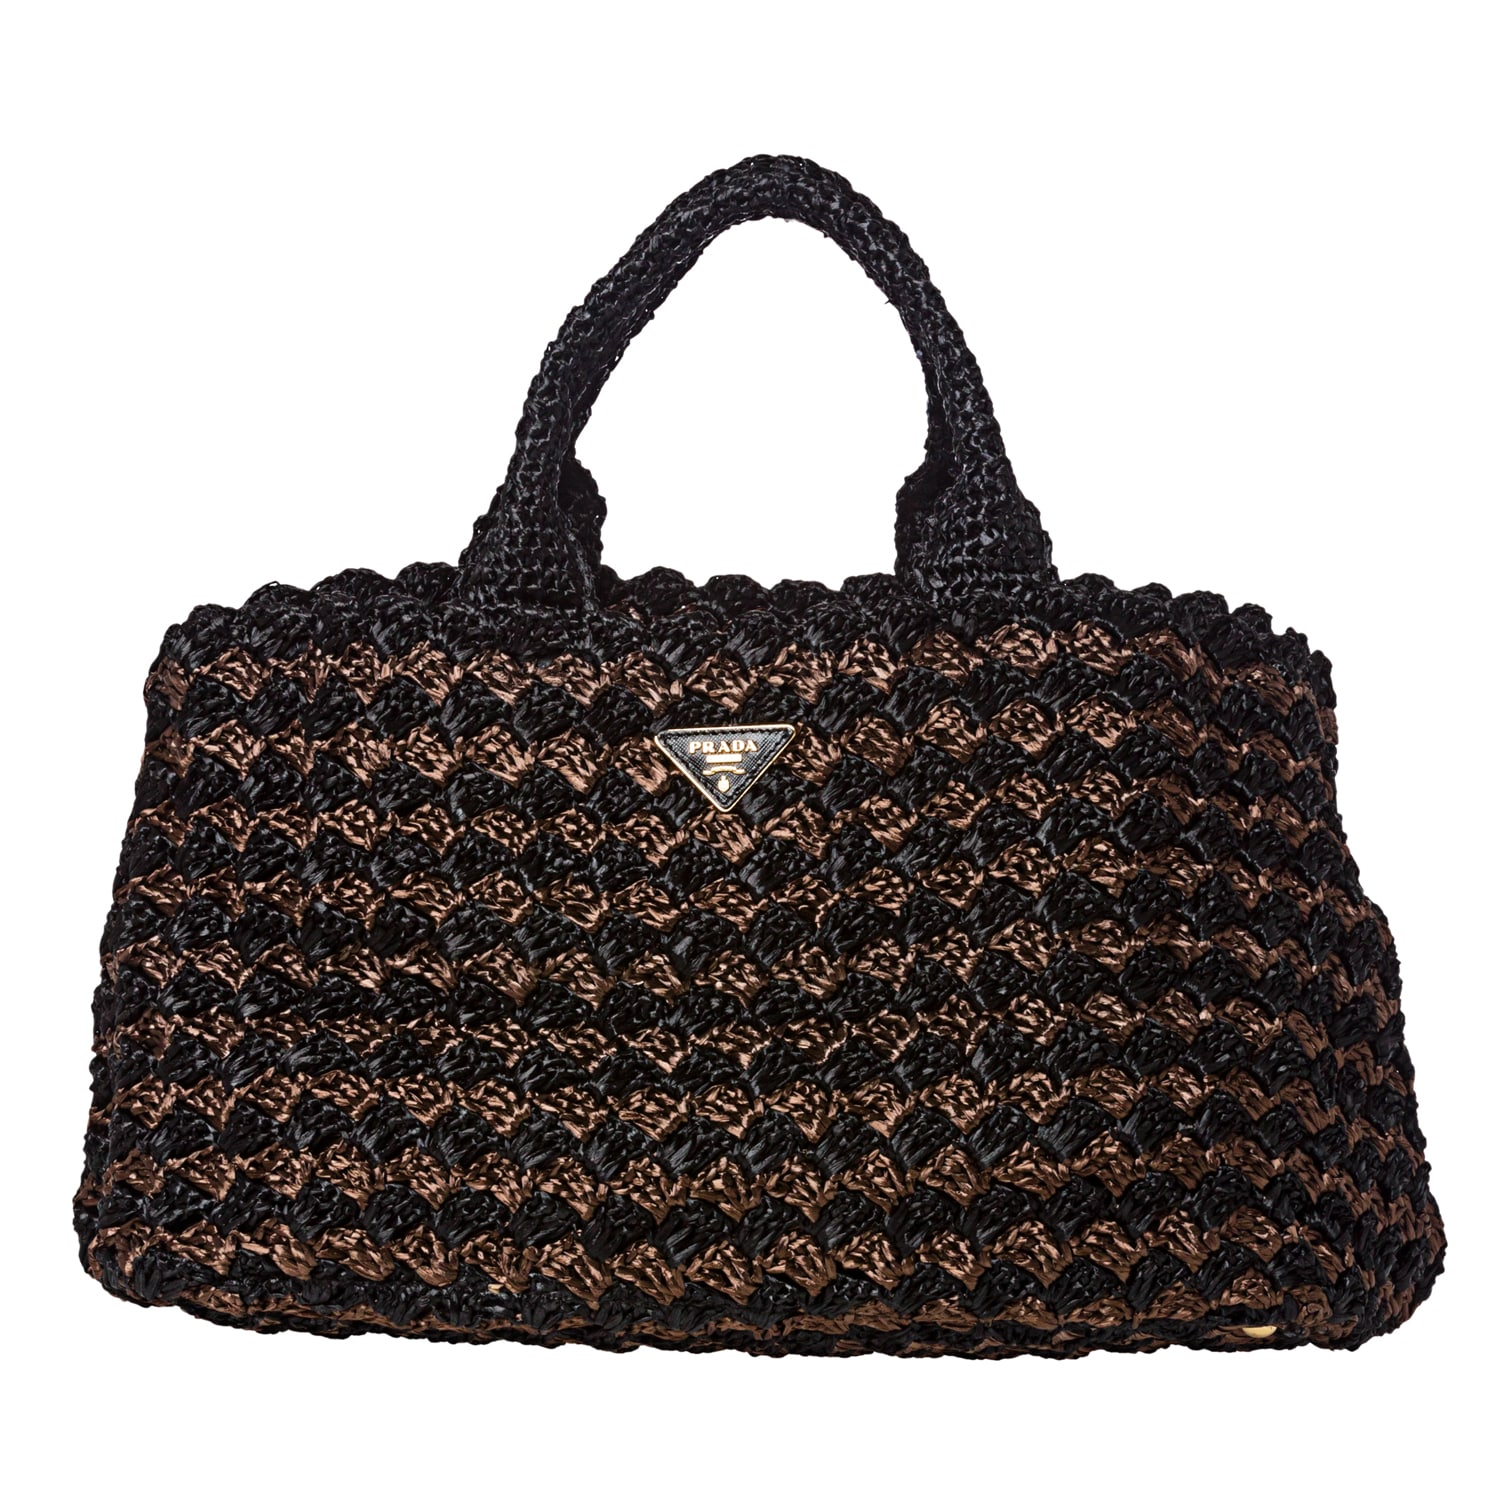 Prada Bi-color Raffia Tote Bag